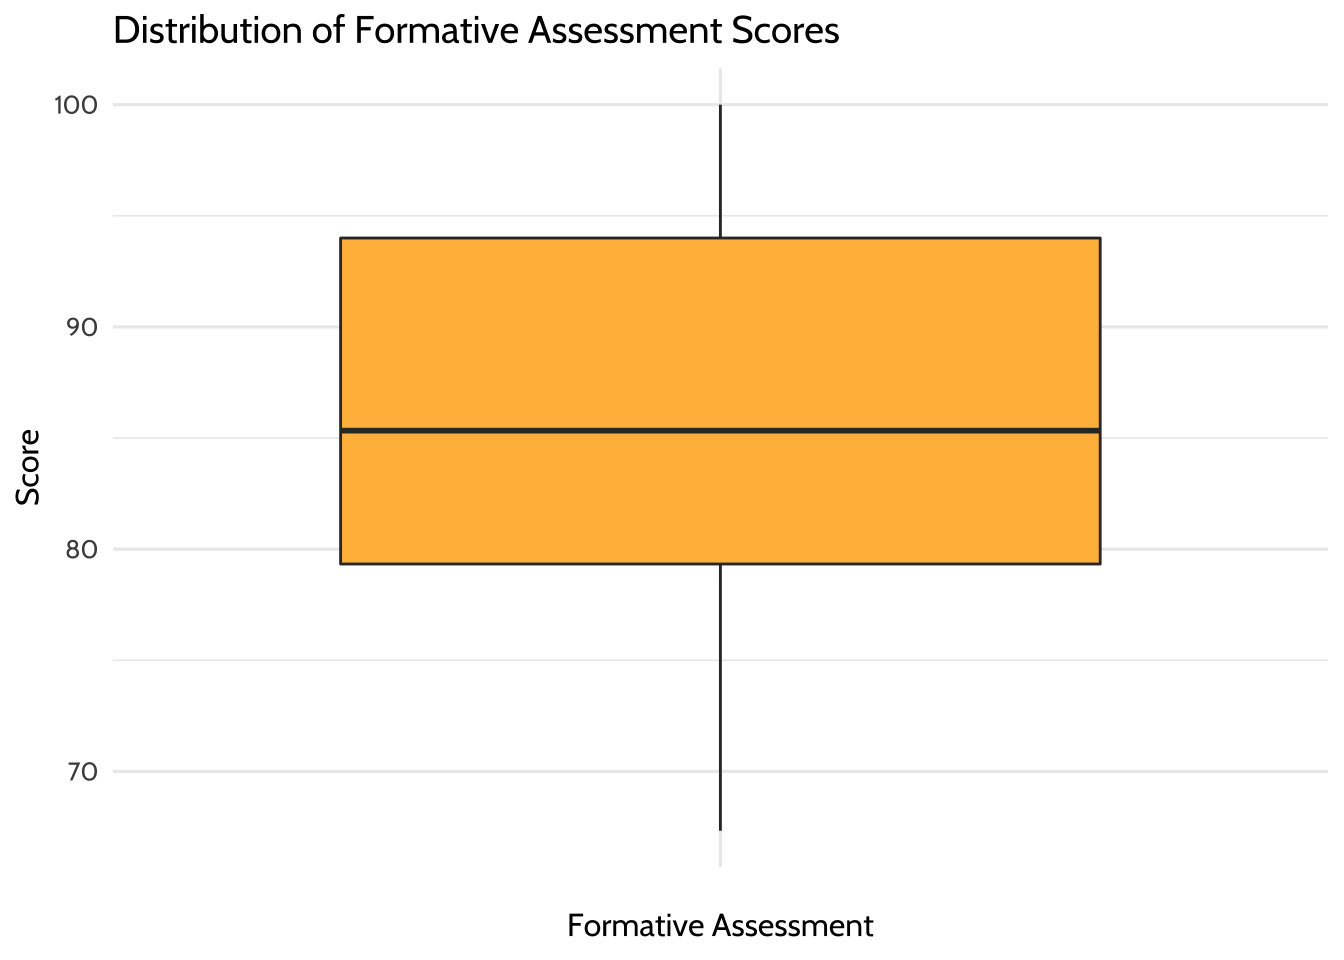 Distribution of Formative Assessment Scores